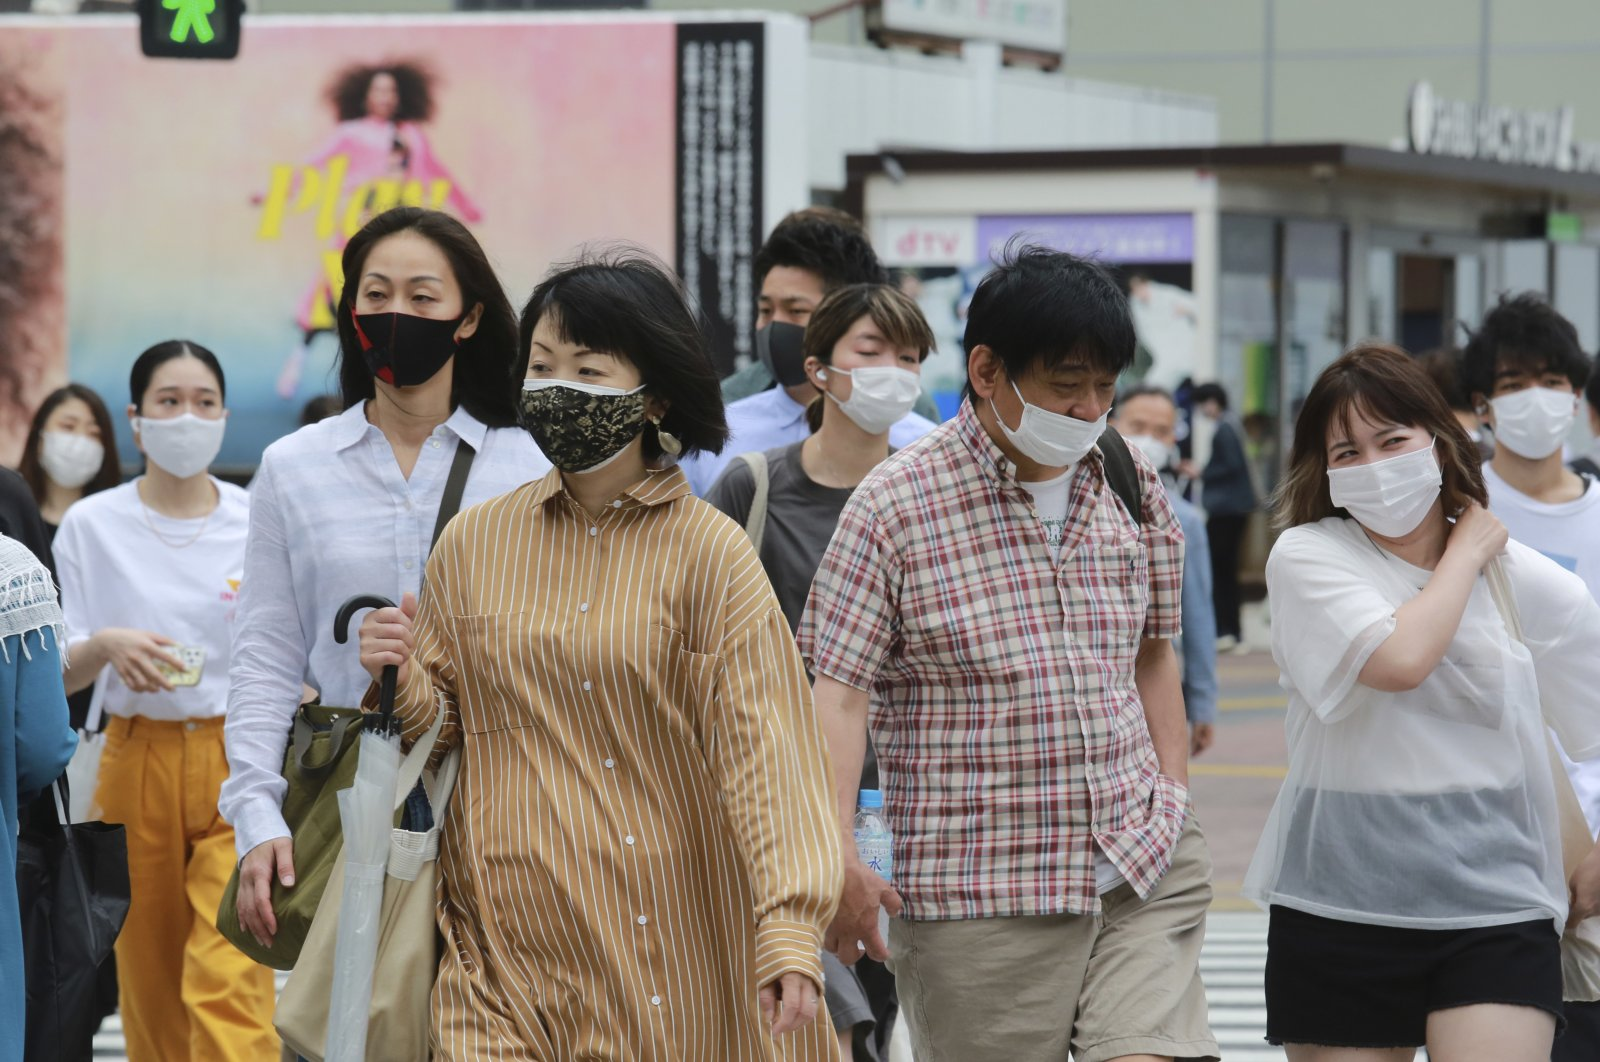 People wearing face masks to protect against the spread of the coronavirus walk on a street in Tokyo, Japan, May 18, 2021. (AP Photo)